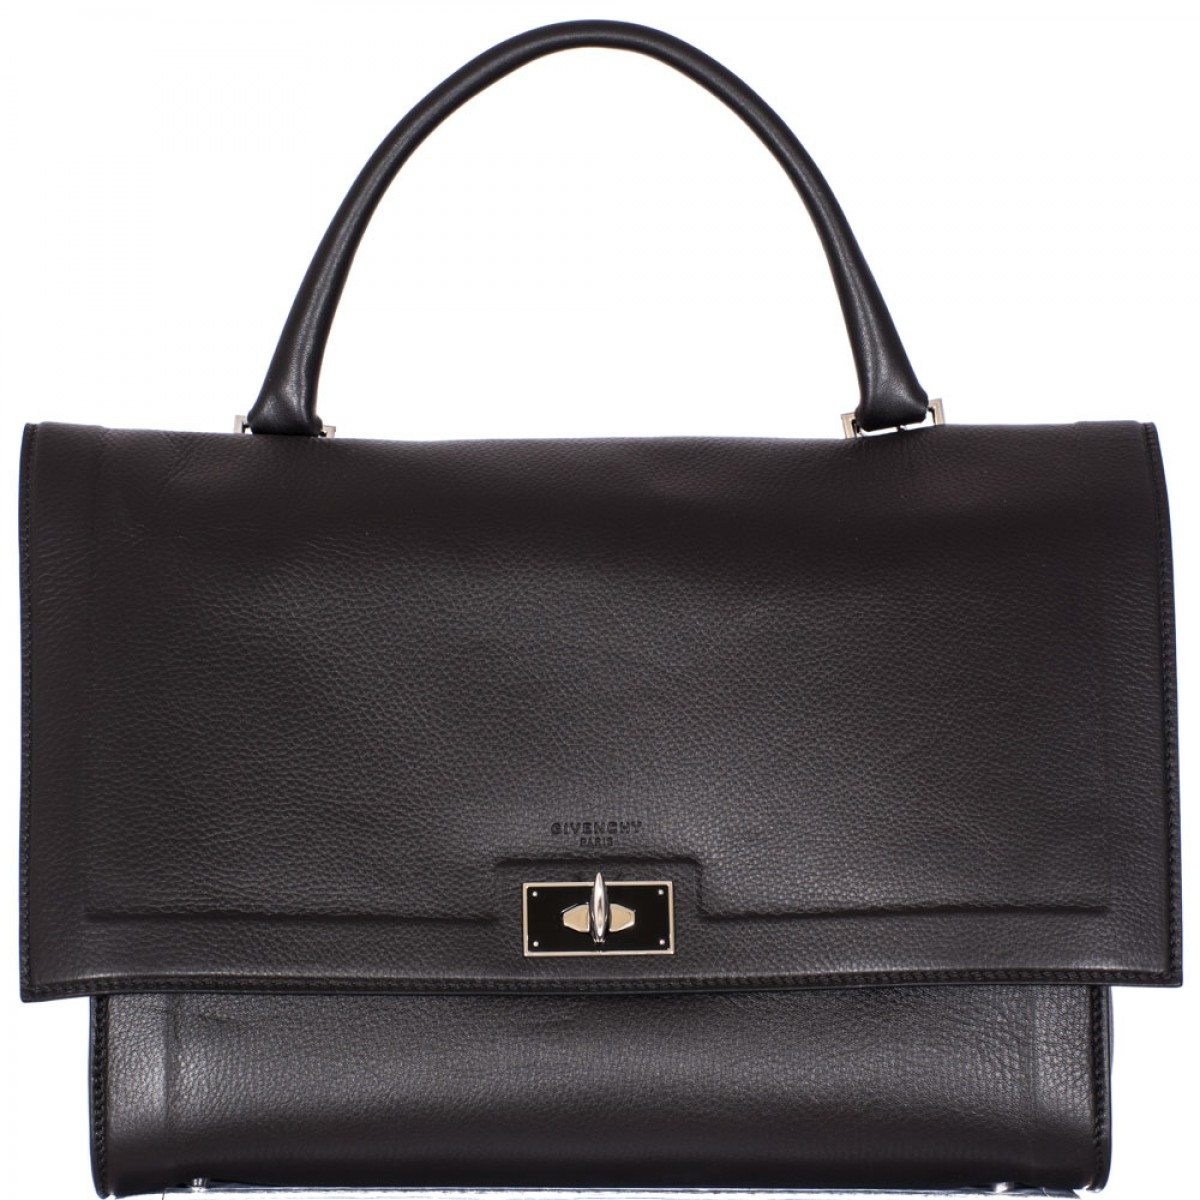 givenchy black hammered leather medium shark bag in black